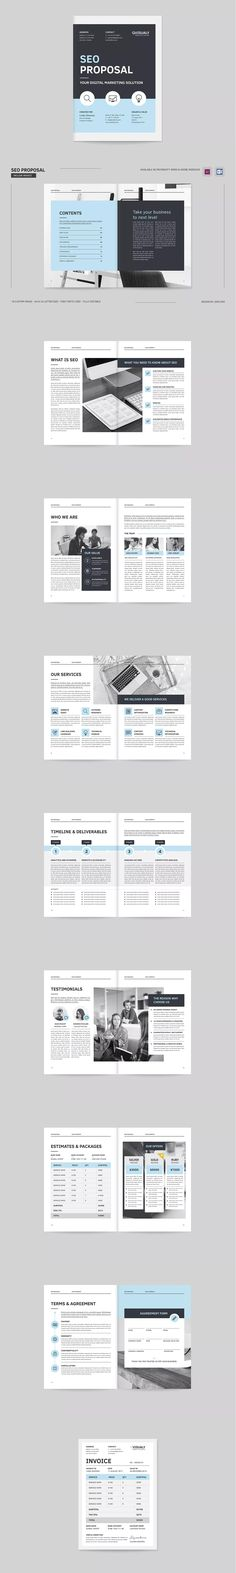 SEO Proposal Brochure Template InDesign INDD - A4 & US Letter Size